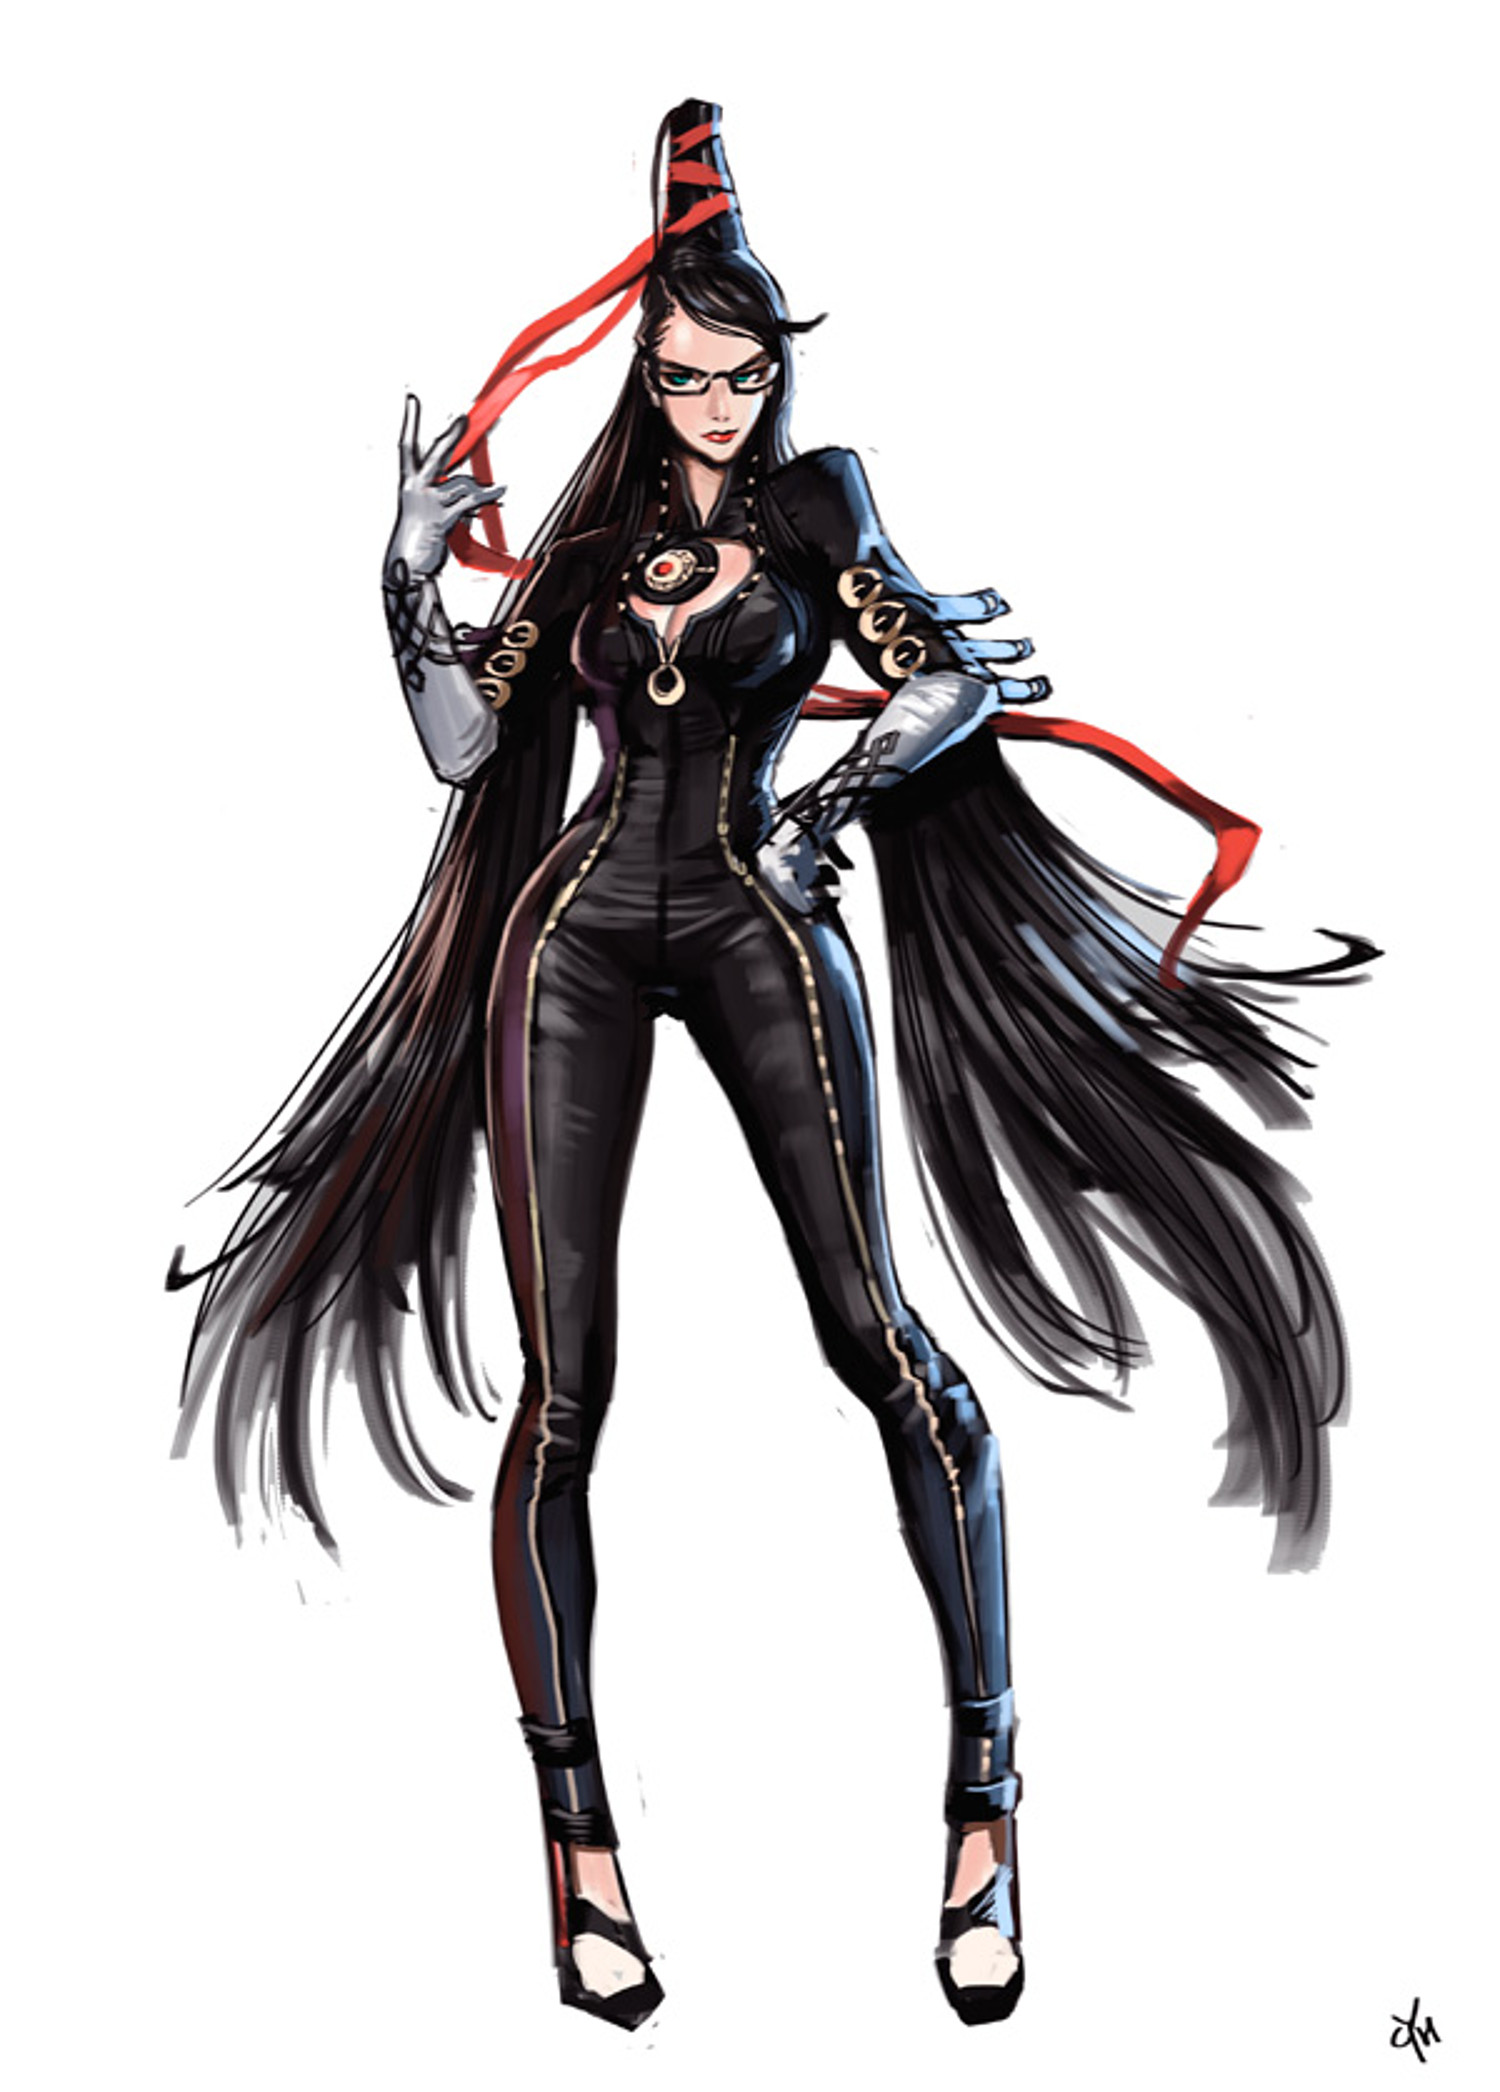 Bayonetta | Jaden's Adventures Wiki | FANDOM powered by Wikia